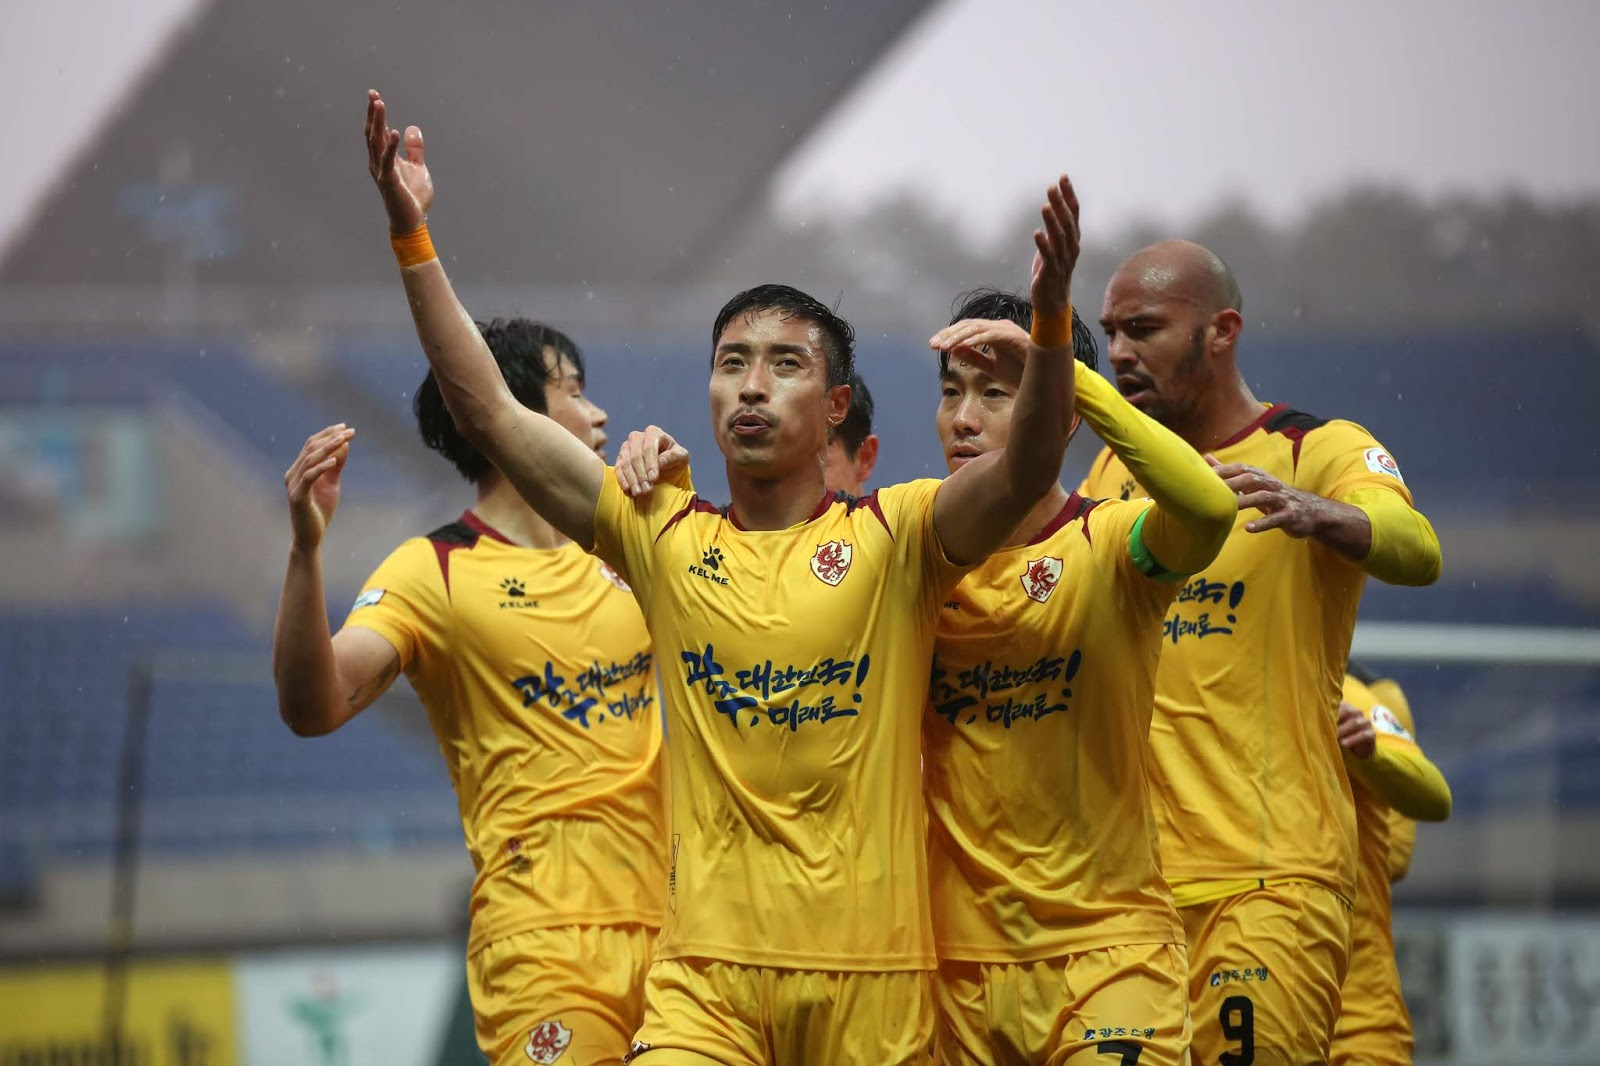 Preview: Gwangju FC vs Daejeon Citizen K League 2 Round 6